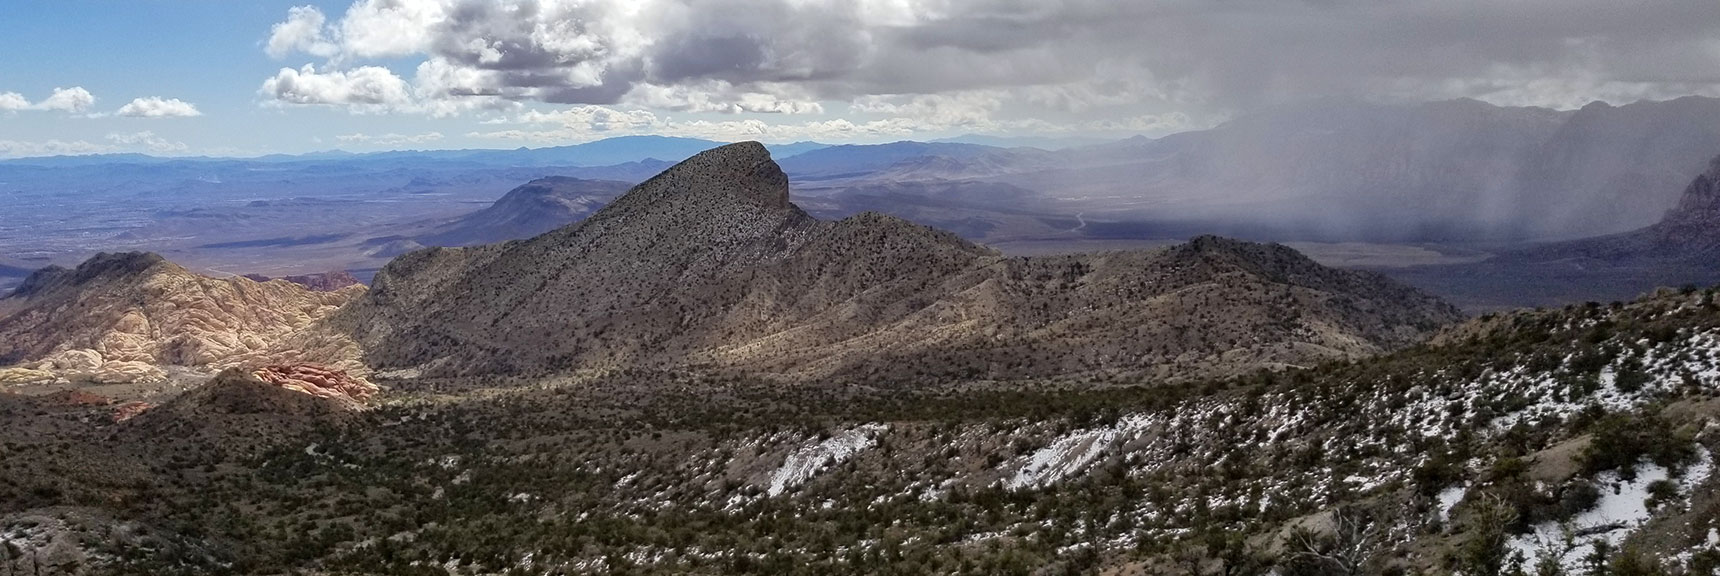 Looking down Calico Basin and Back of Turtlehead Peak from the base of La Madre Mountain